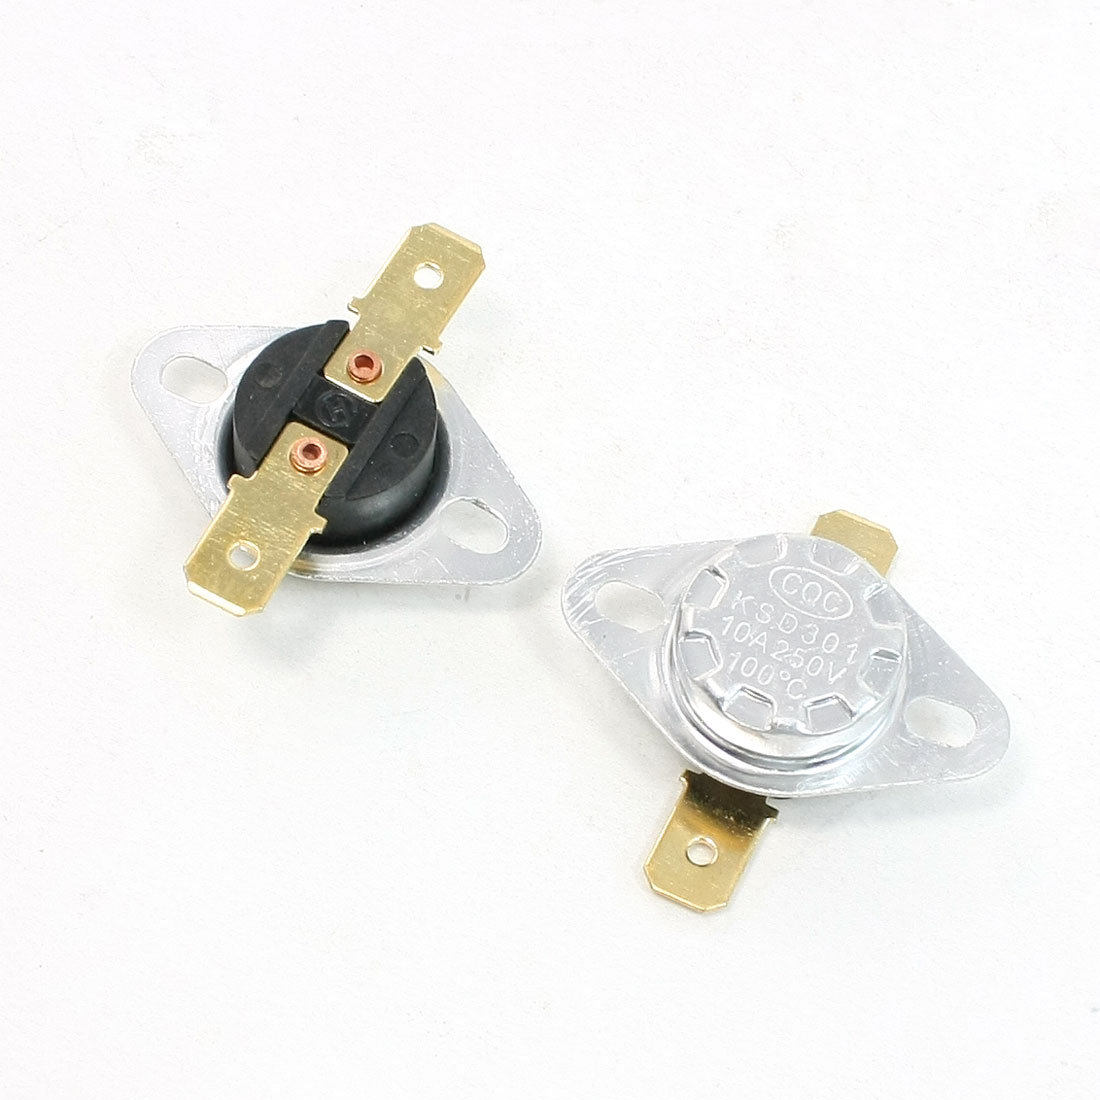 2 Pcs 250V 10 A 100 Celsius Normal Close Temperature Control Thermostat KSD301